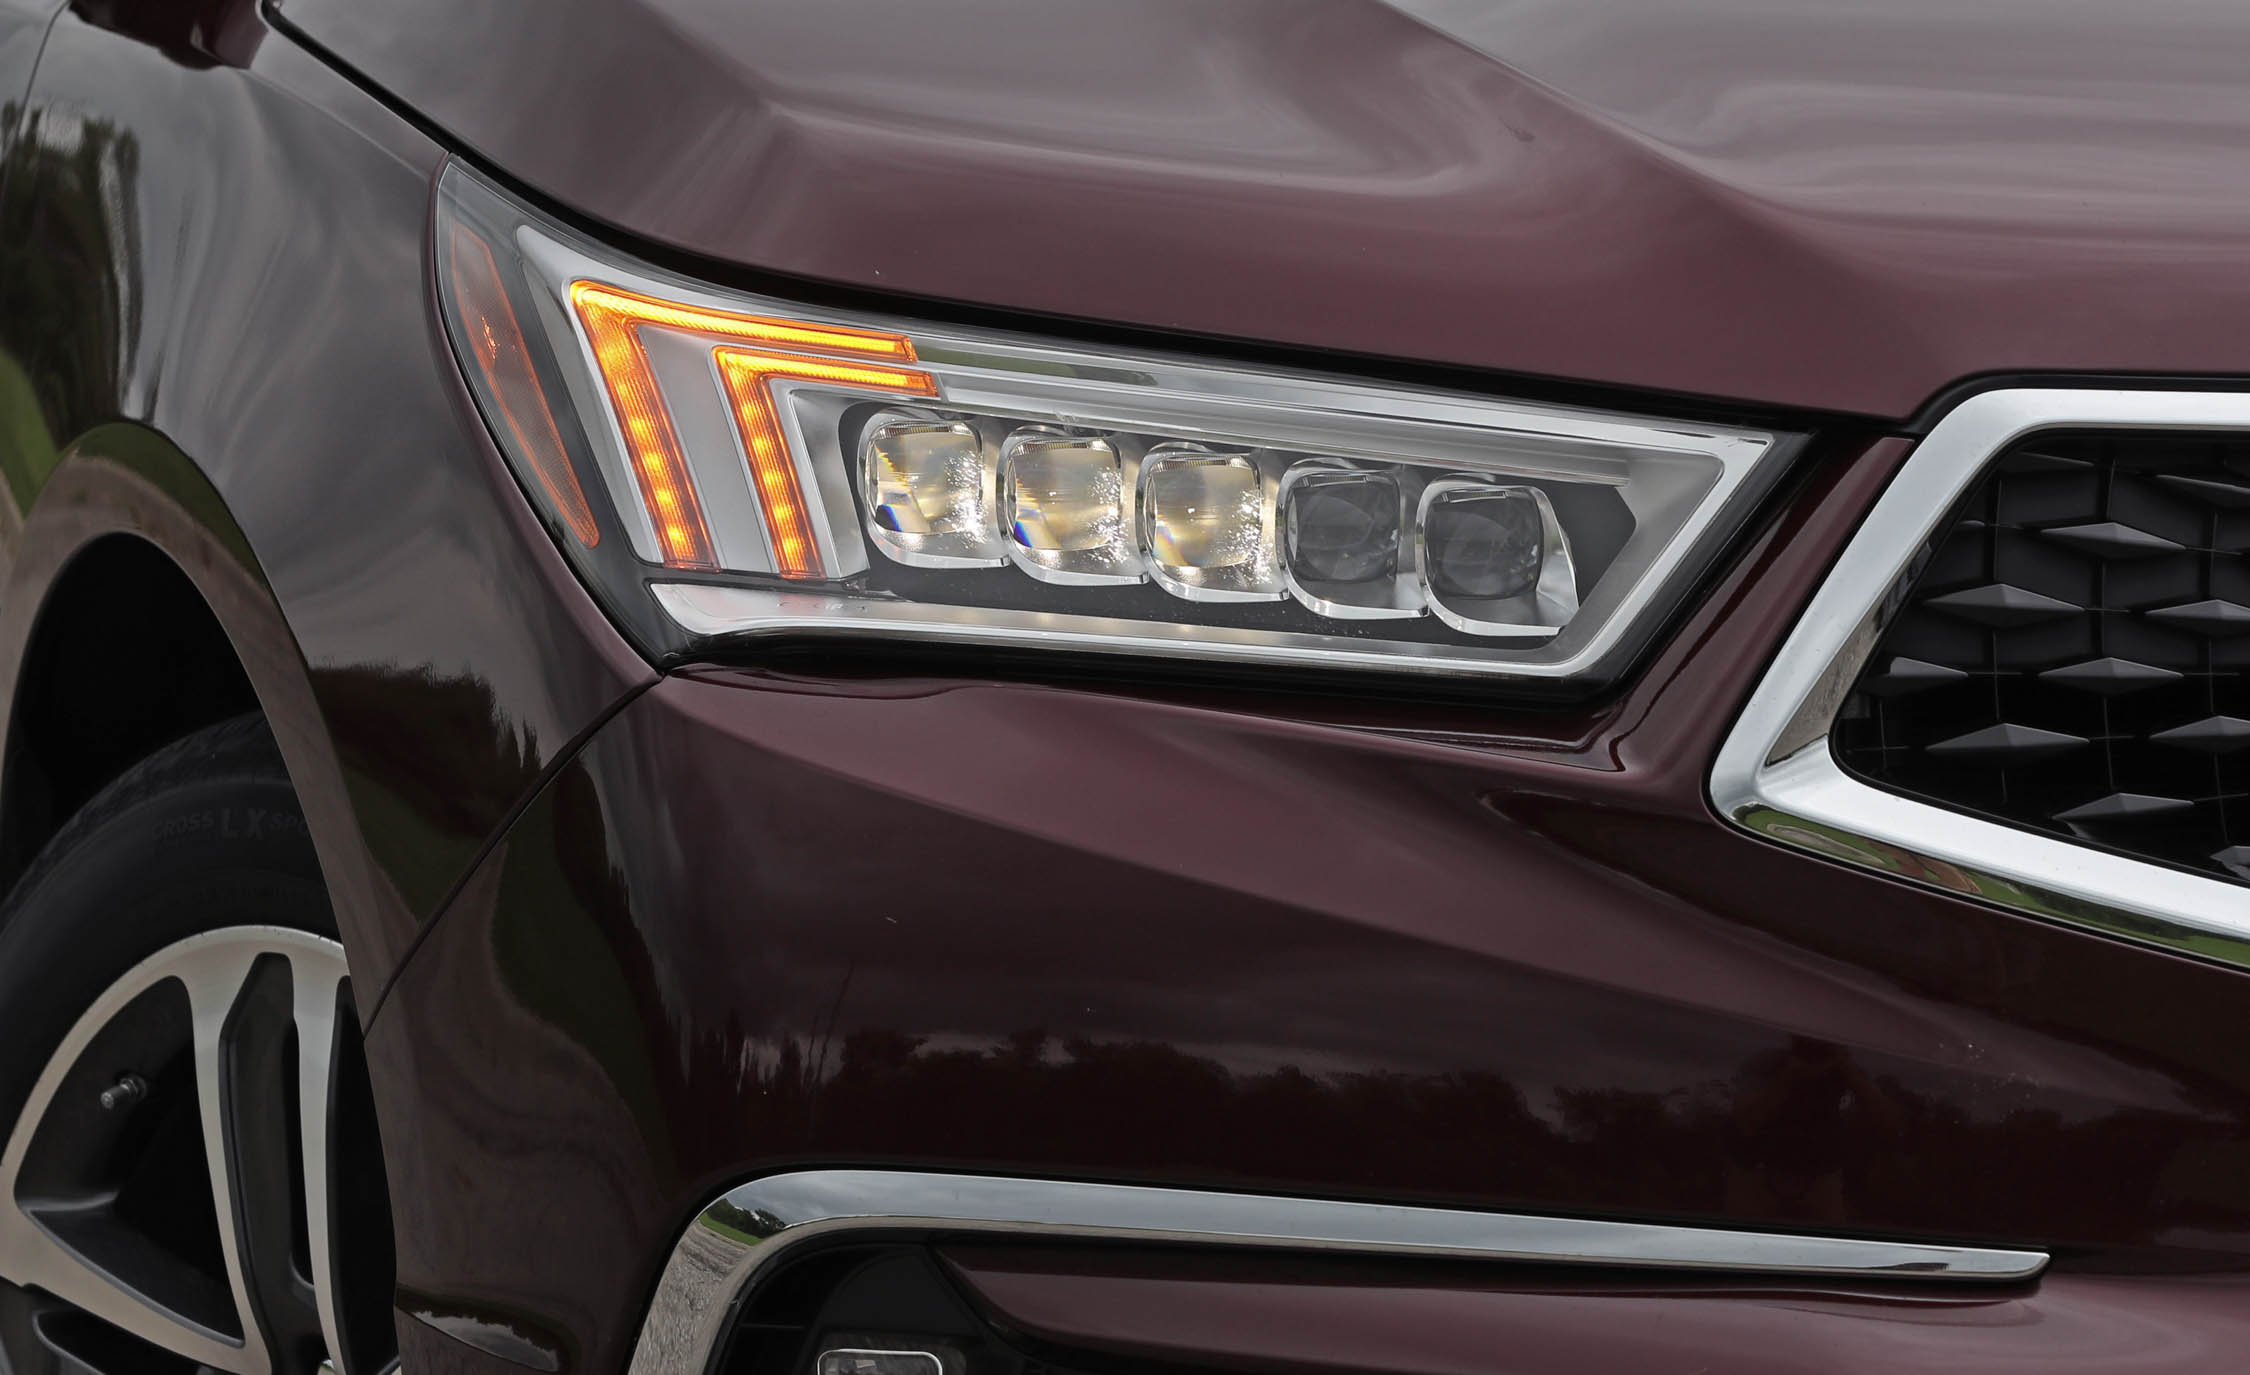 2017 Acura Mdx Exterior View Headlight (Photo 11 of 22)